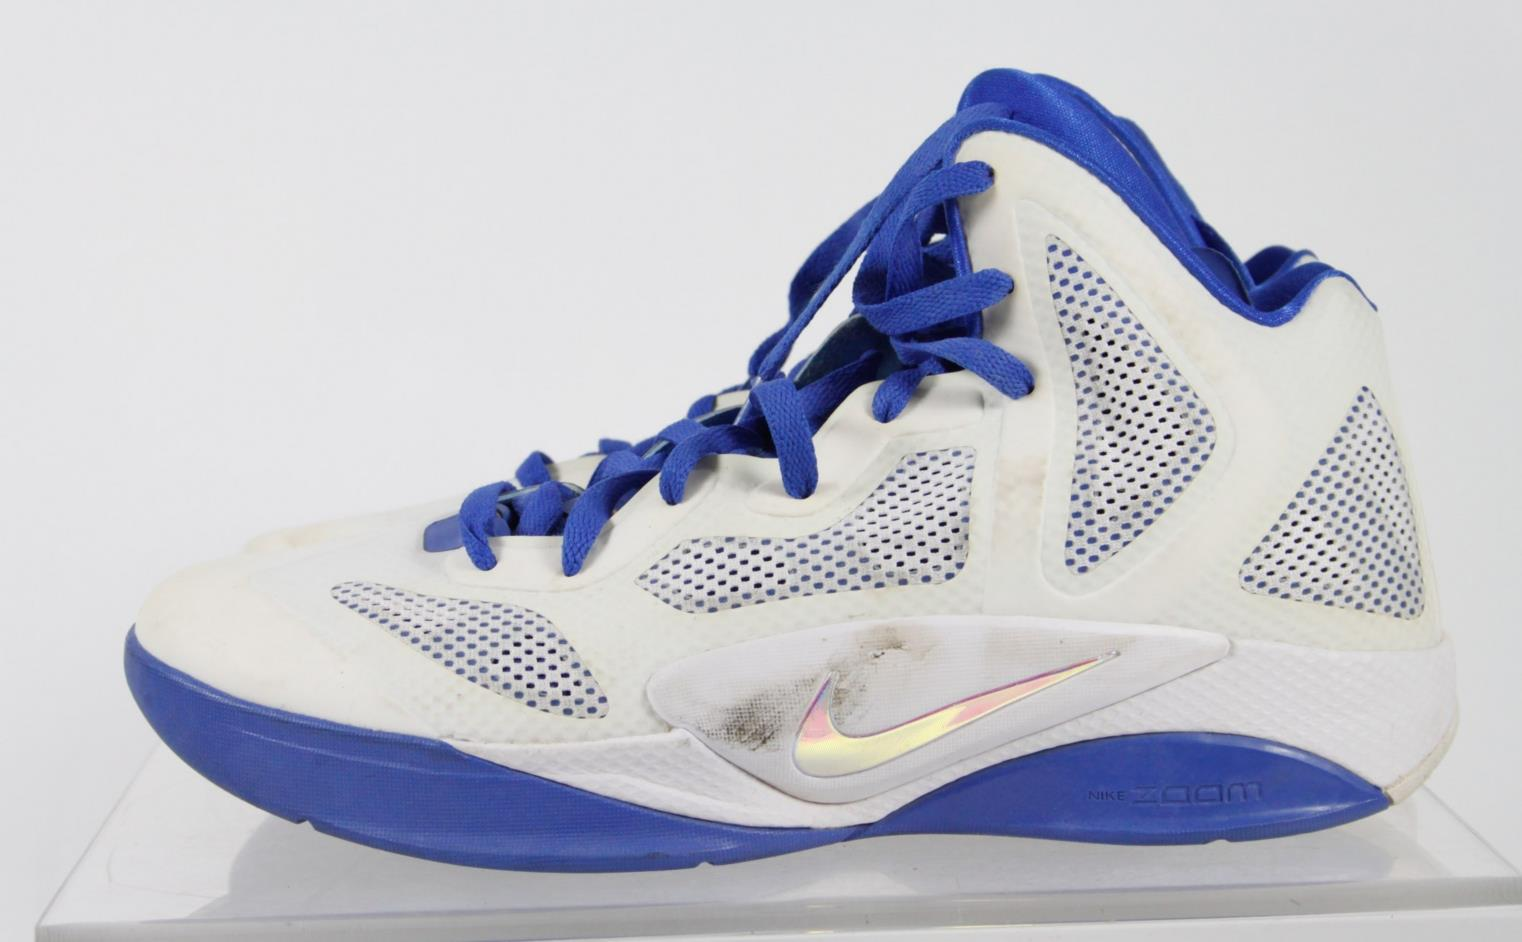 Nike Zoom Hyperfuse White Blue Details High Top Sneakers ...